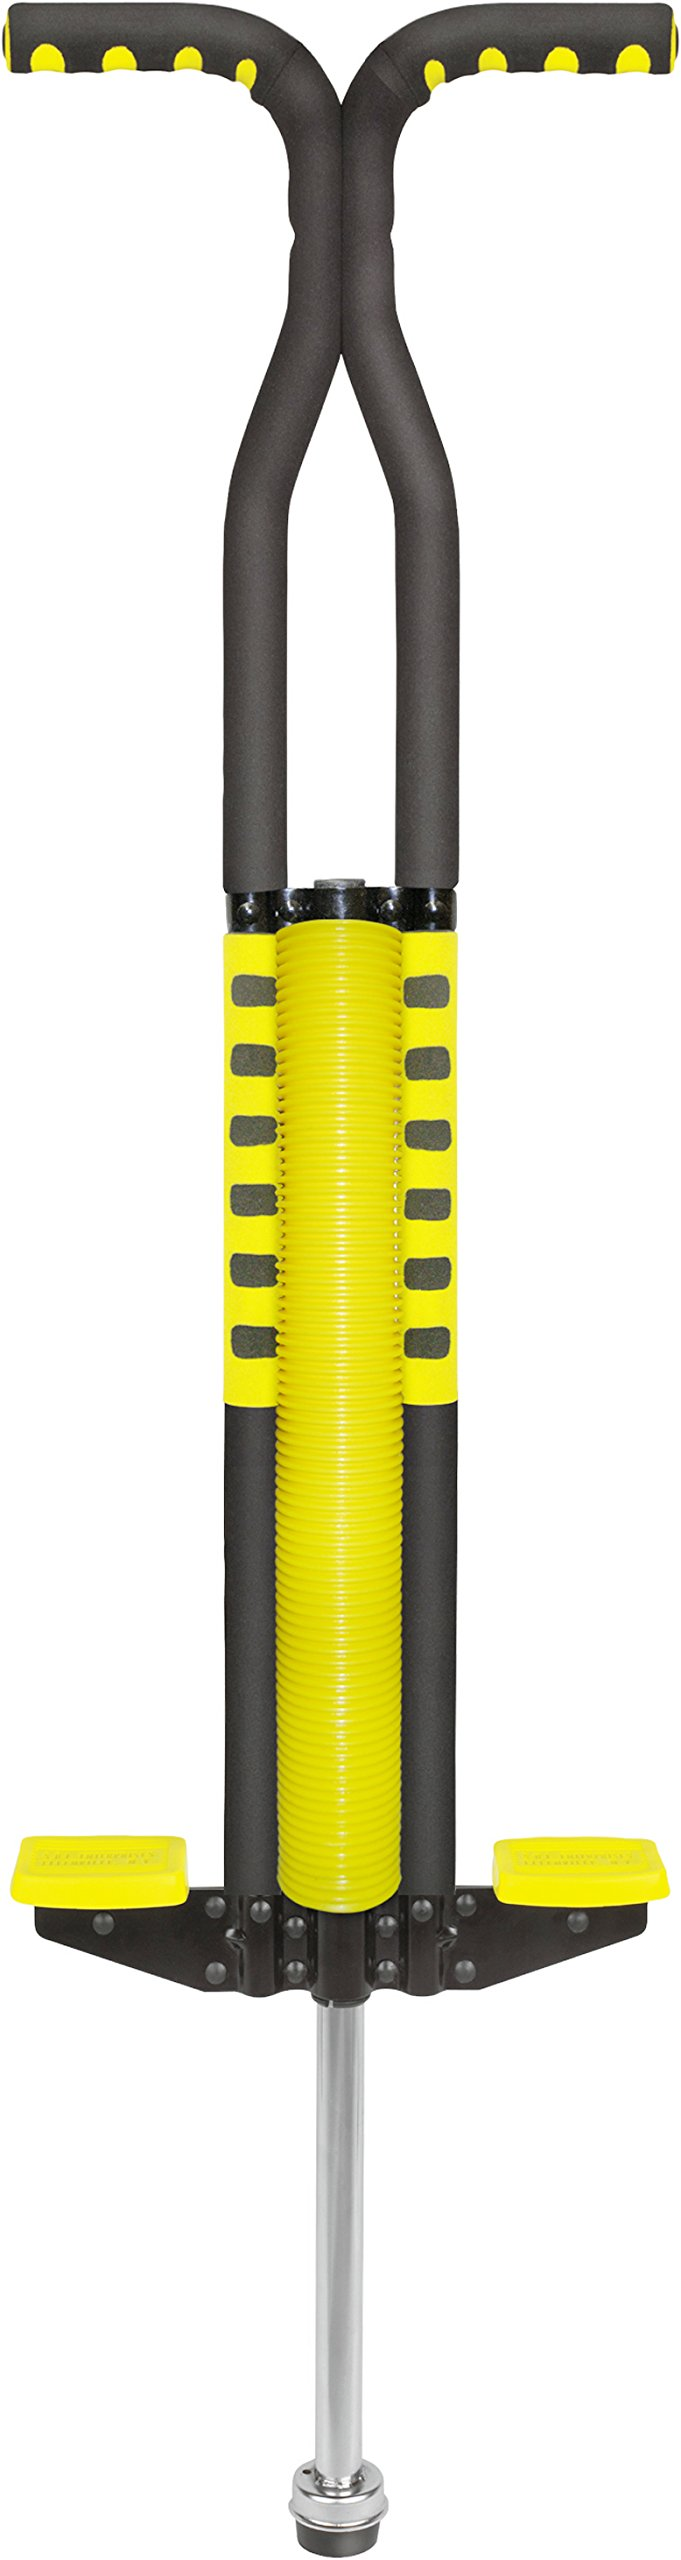 Foam Master Pogo Stick by SBI Enterprises